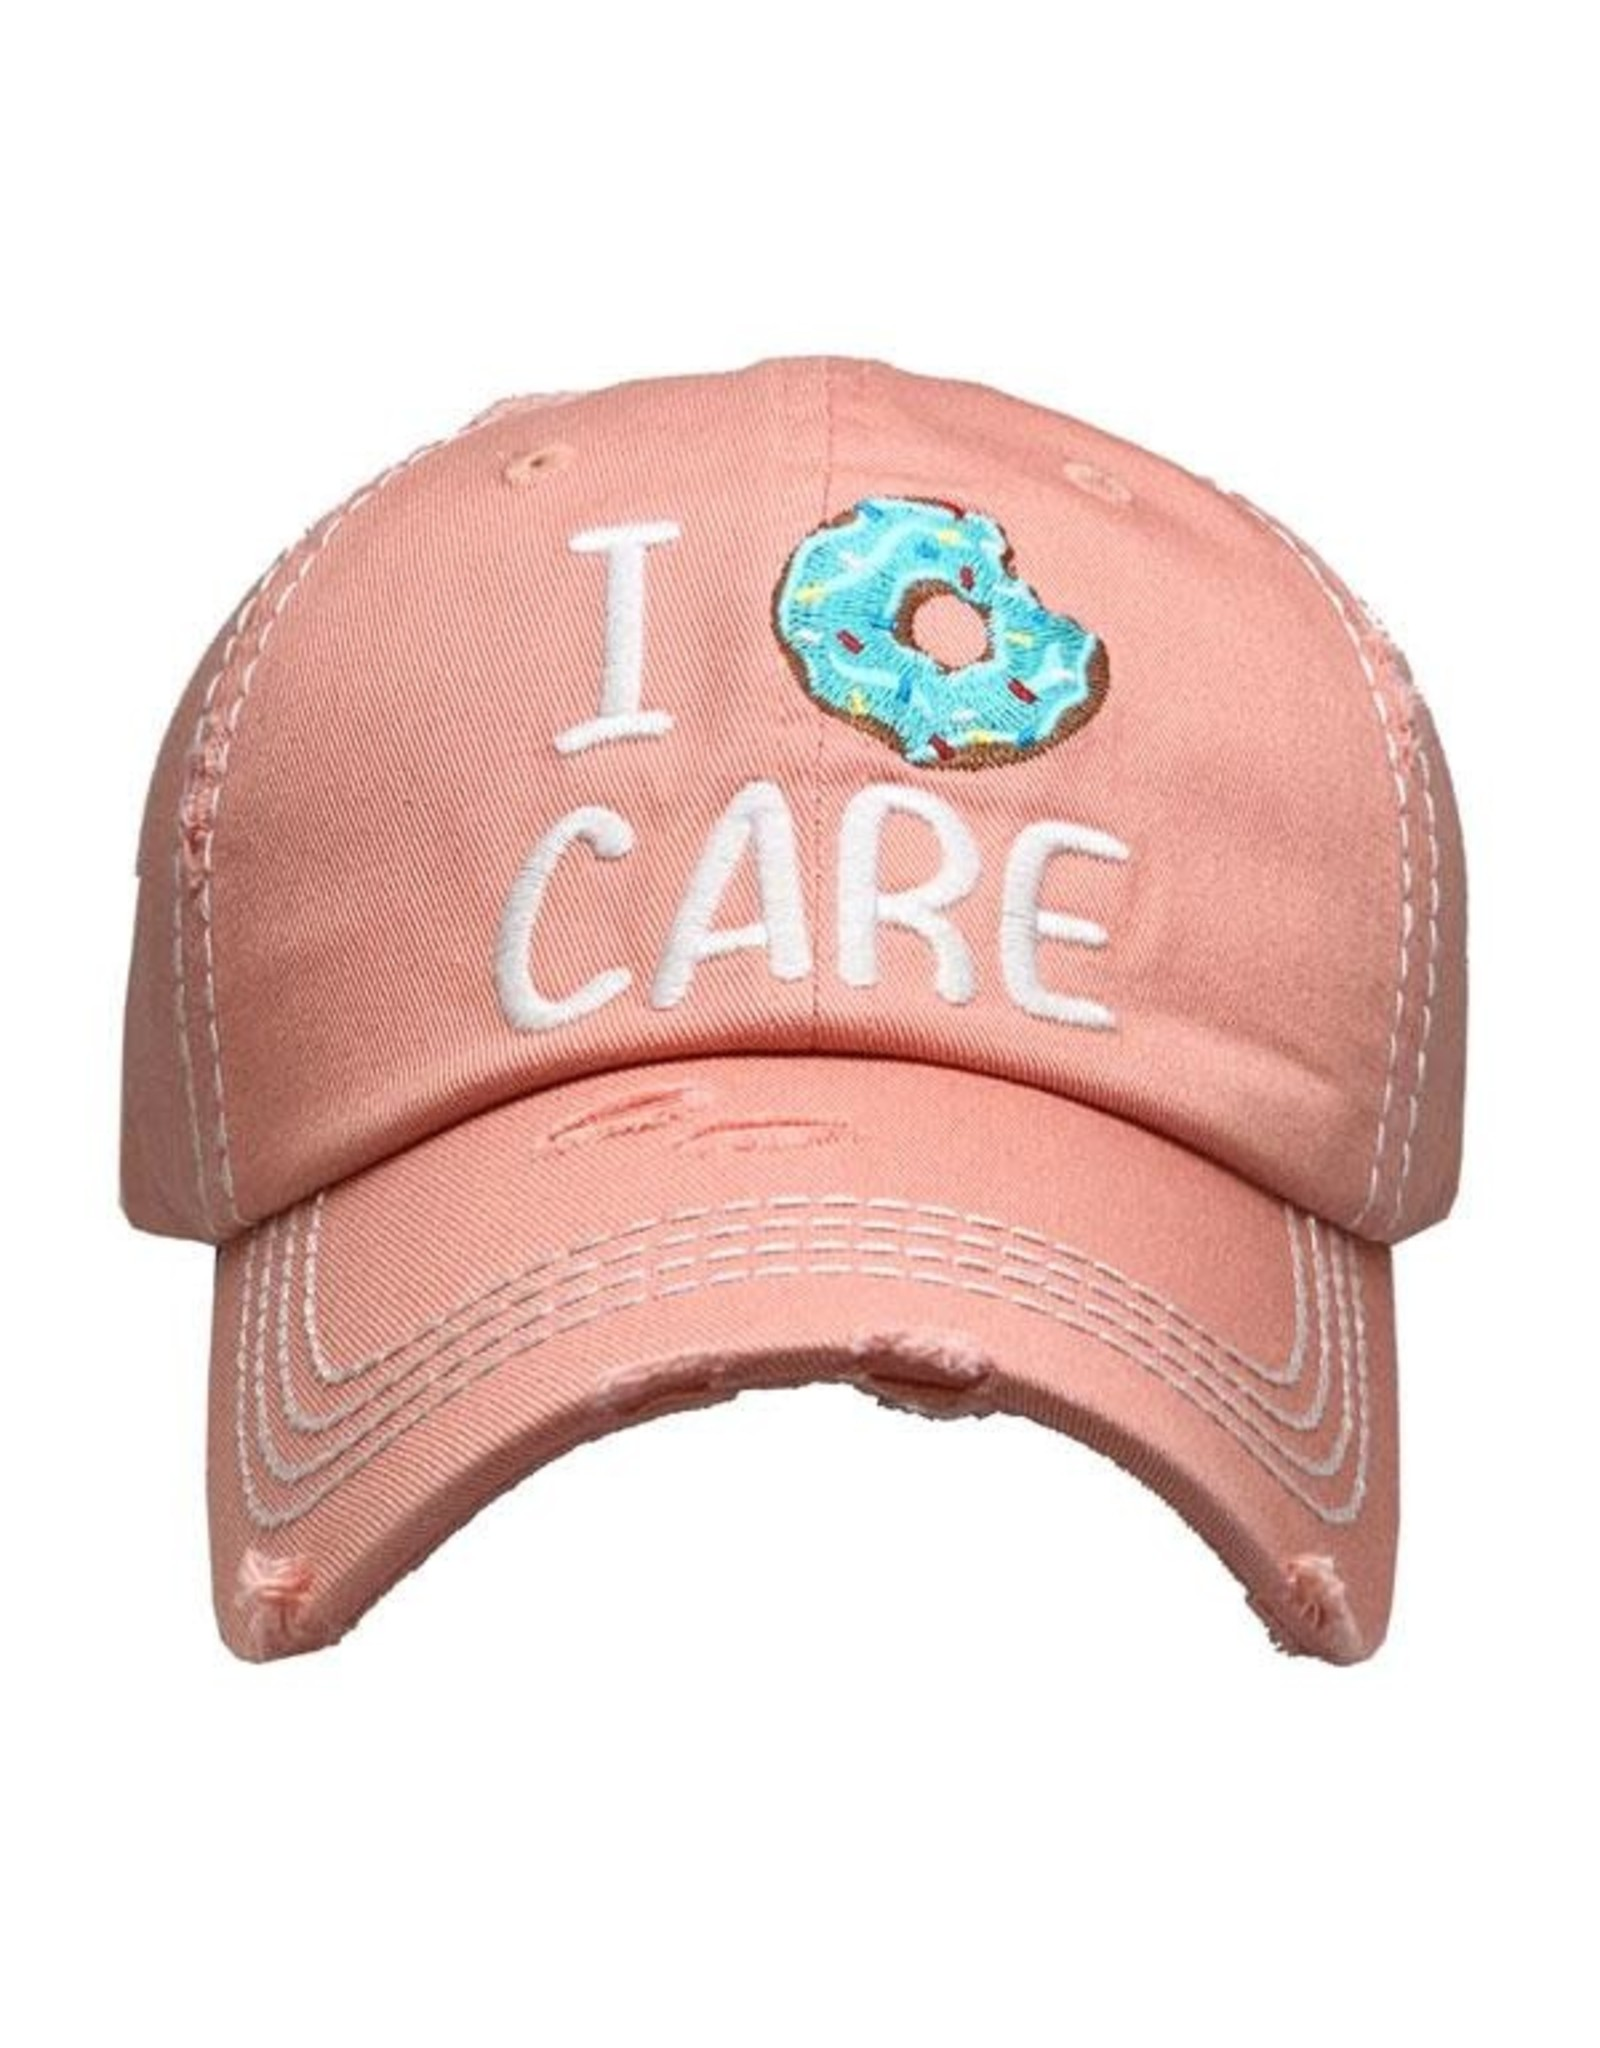 I Donut Care coral hat